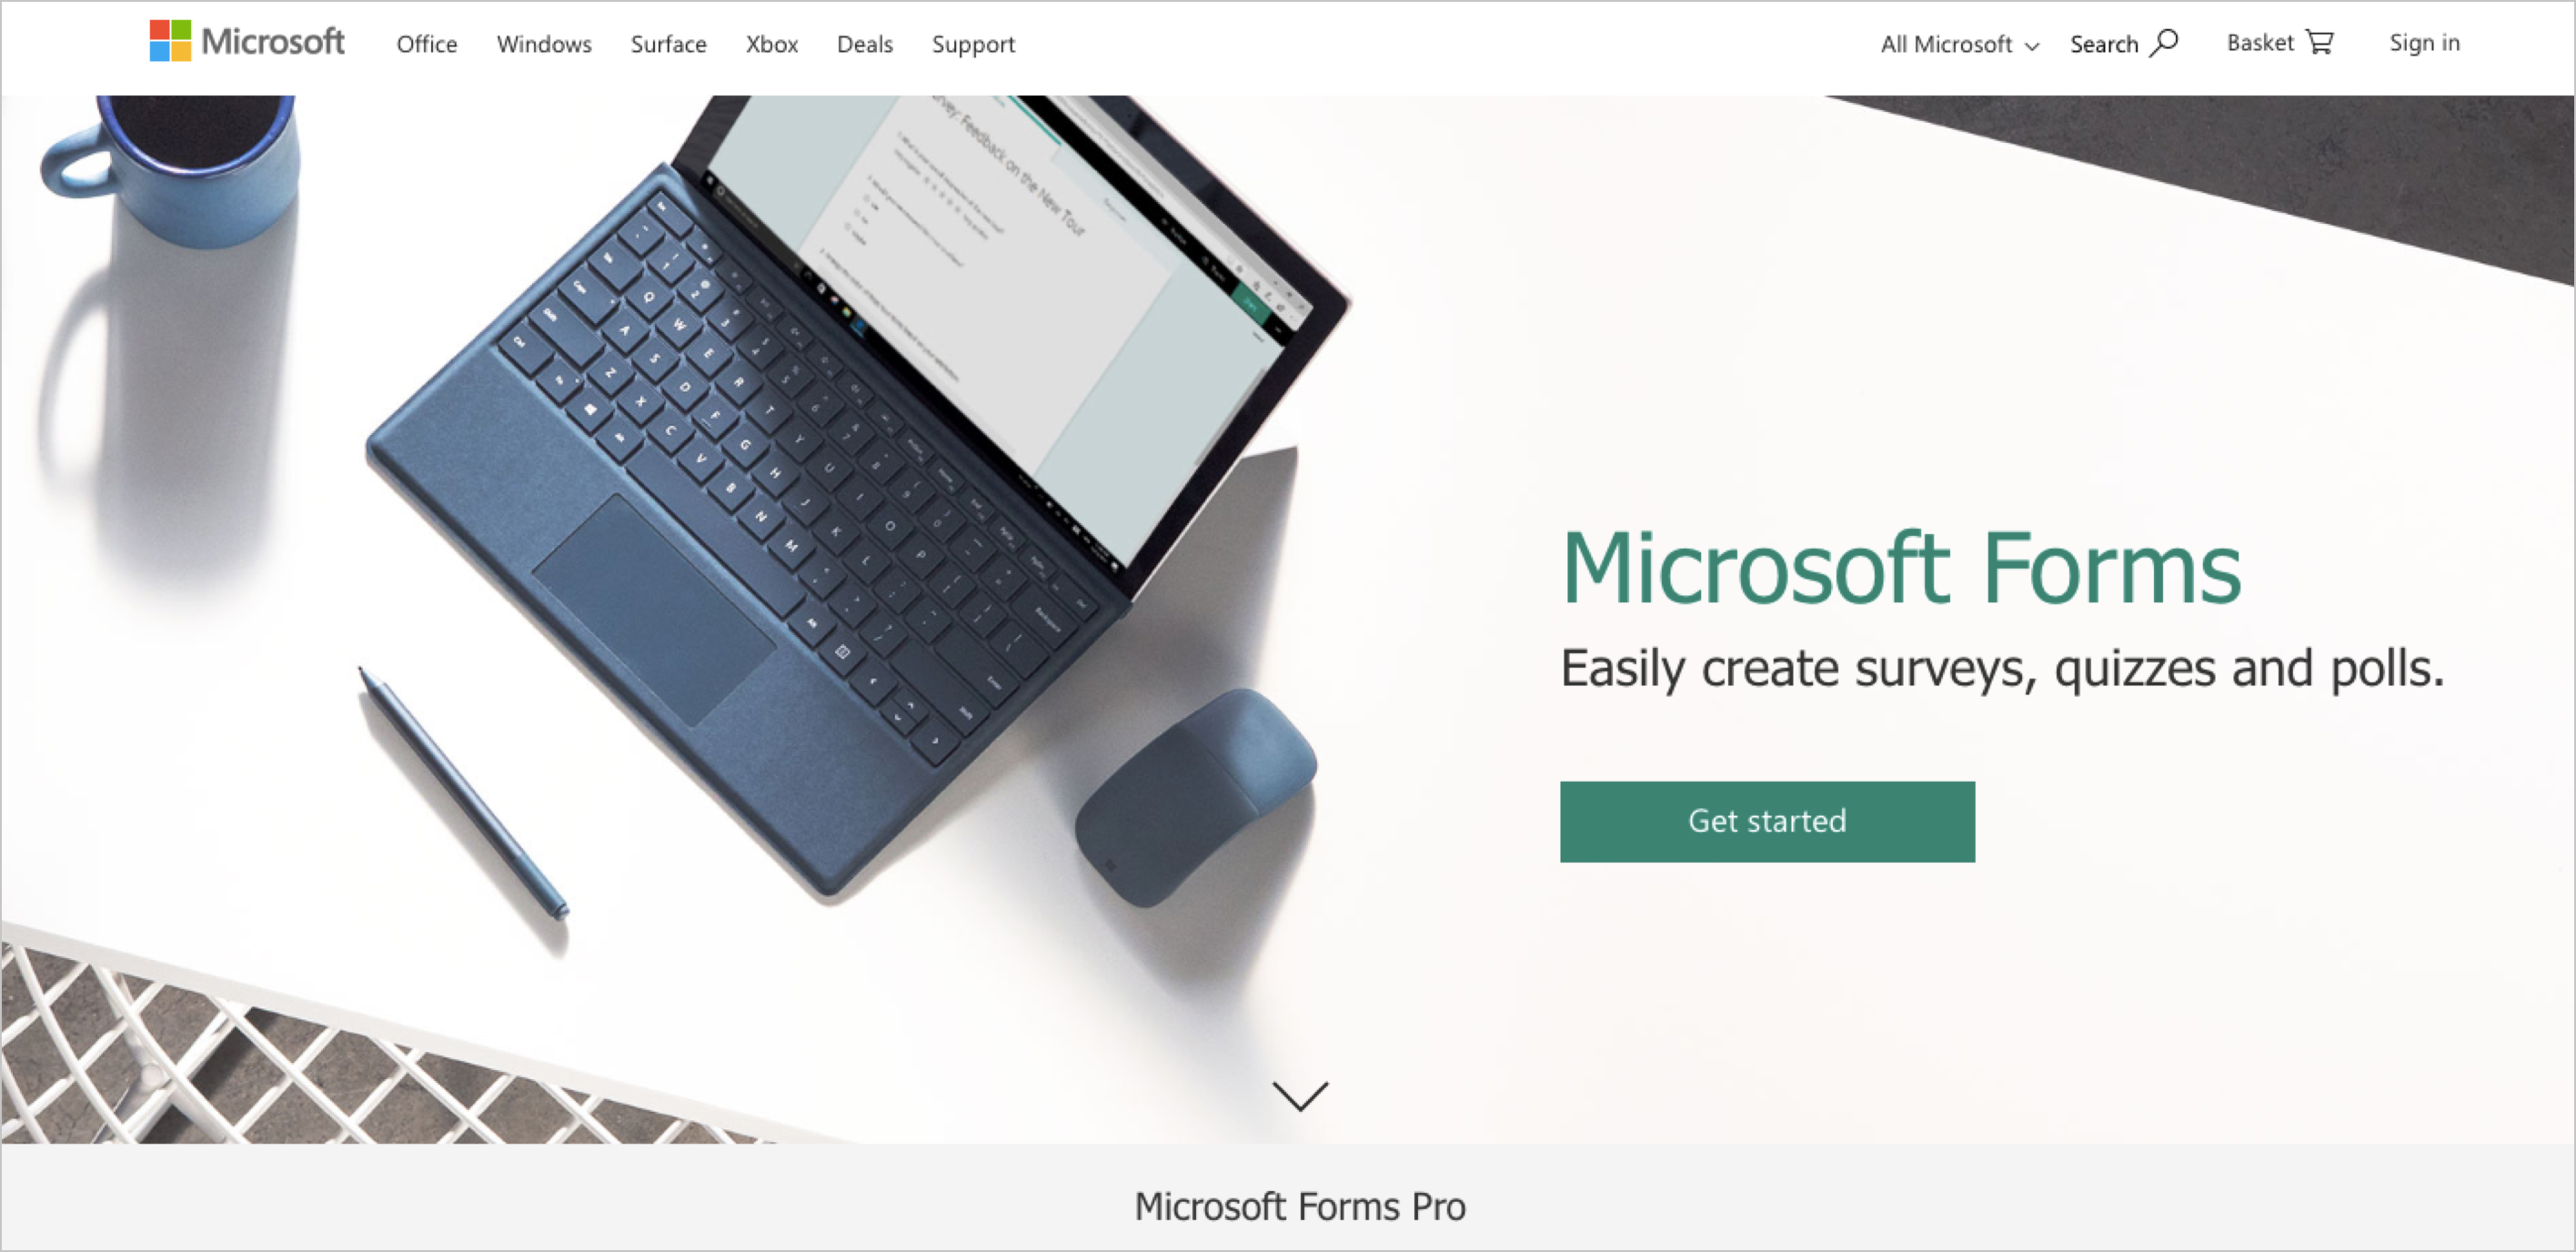 One of the most intuitive and best online form creators, Microsoft Forms integrates with Microsoft Office Suite.